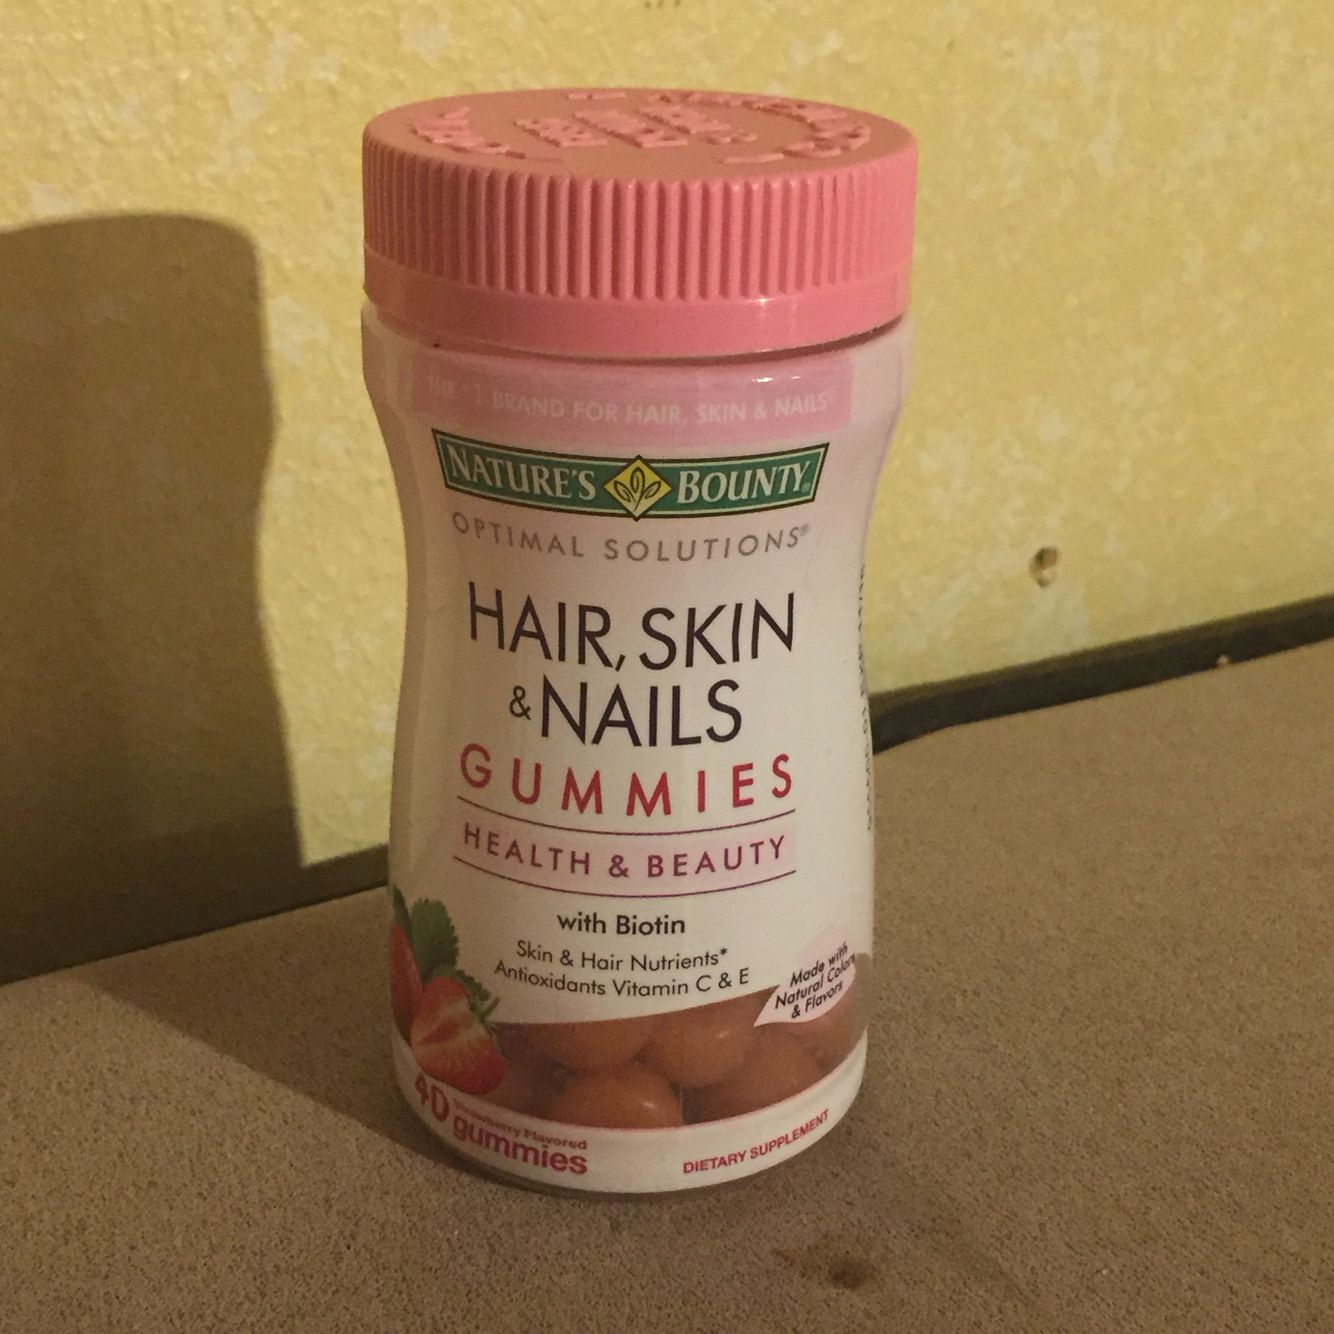 Nature's Bounty- Hair, skin and nails Gummies  I received this product free for my honest review.  These are a tasty gummy designed to support your hair, skin, and nails. They are easy to work into your routine.  I have used them for four weeks now, and although I haven't seen a great difference, I have decided to keep taking them for another month and see if I notice a change.